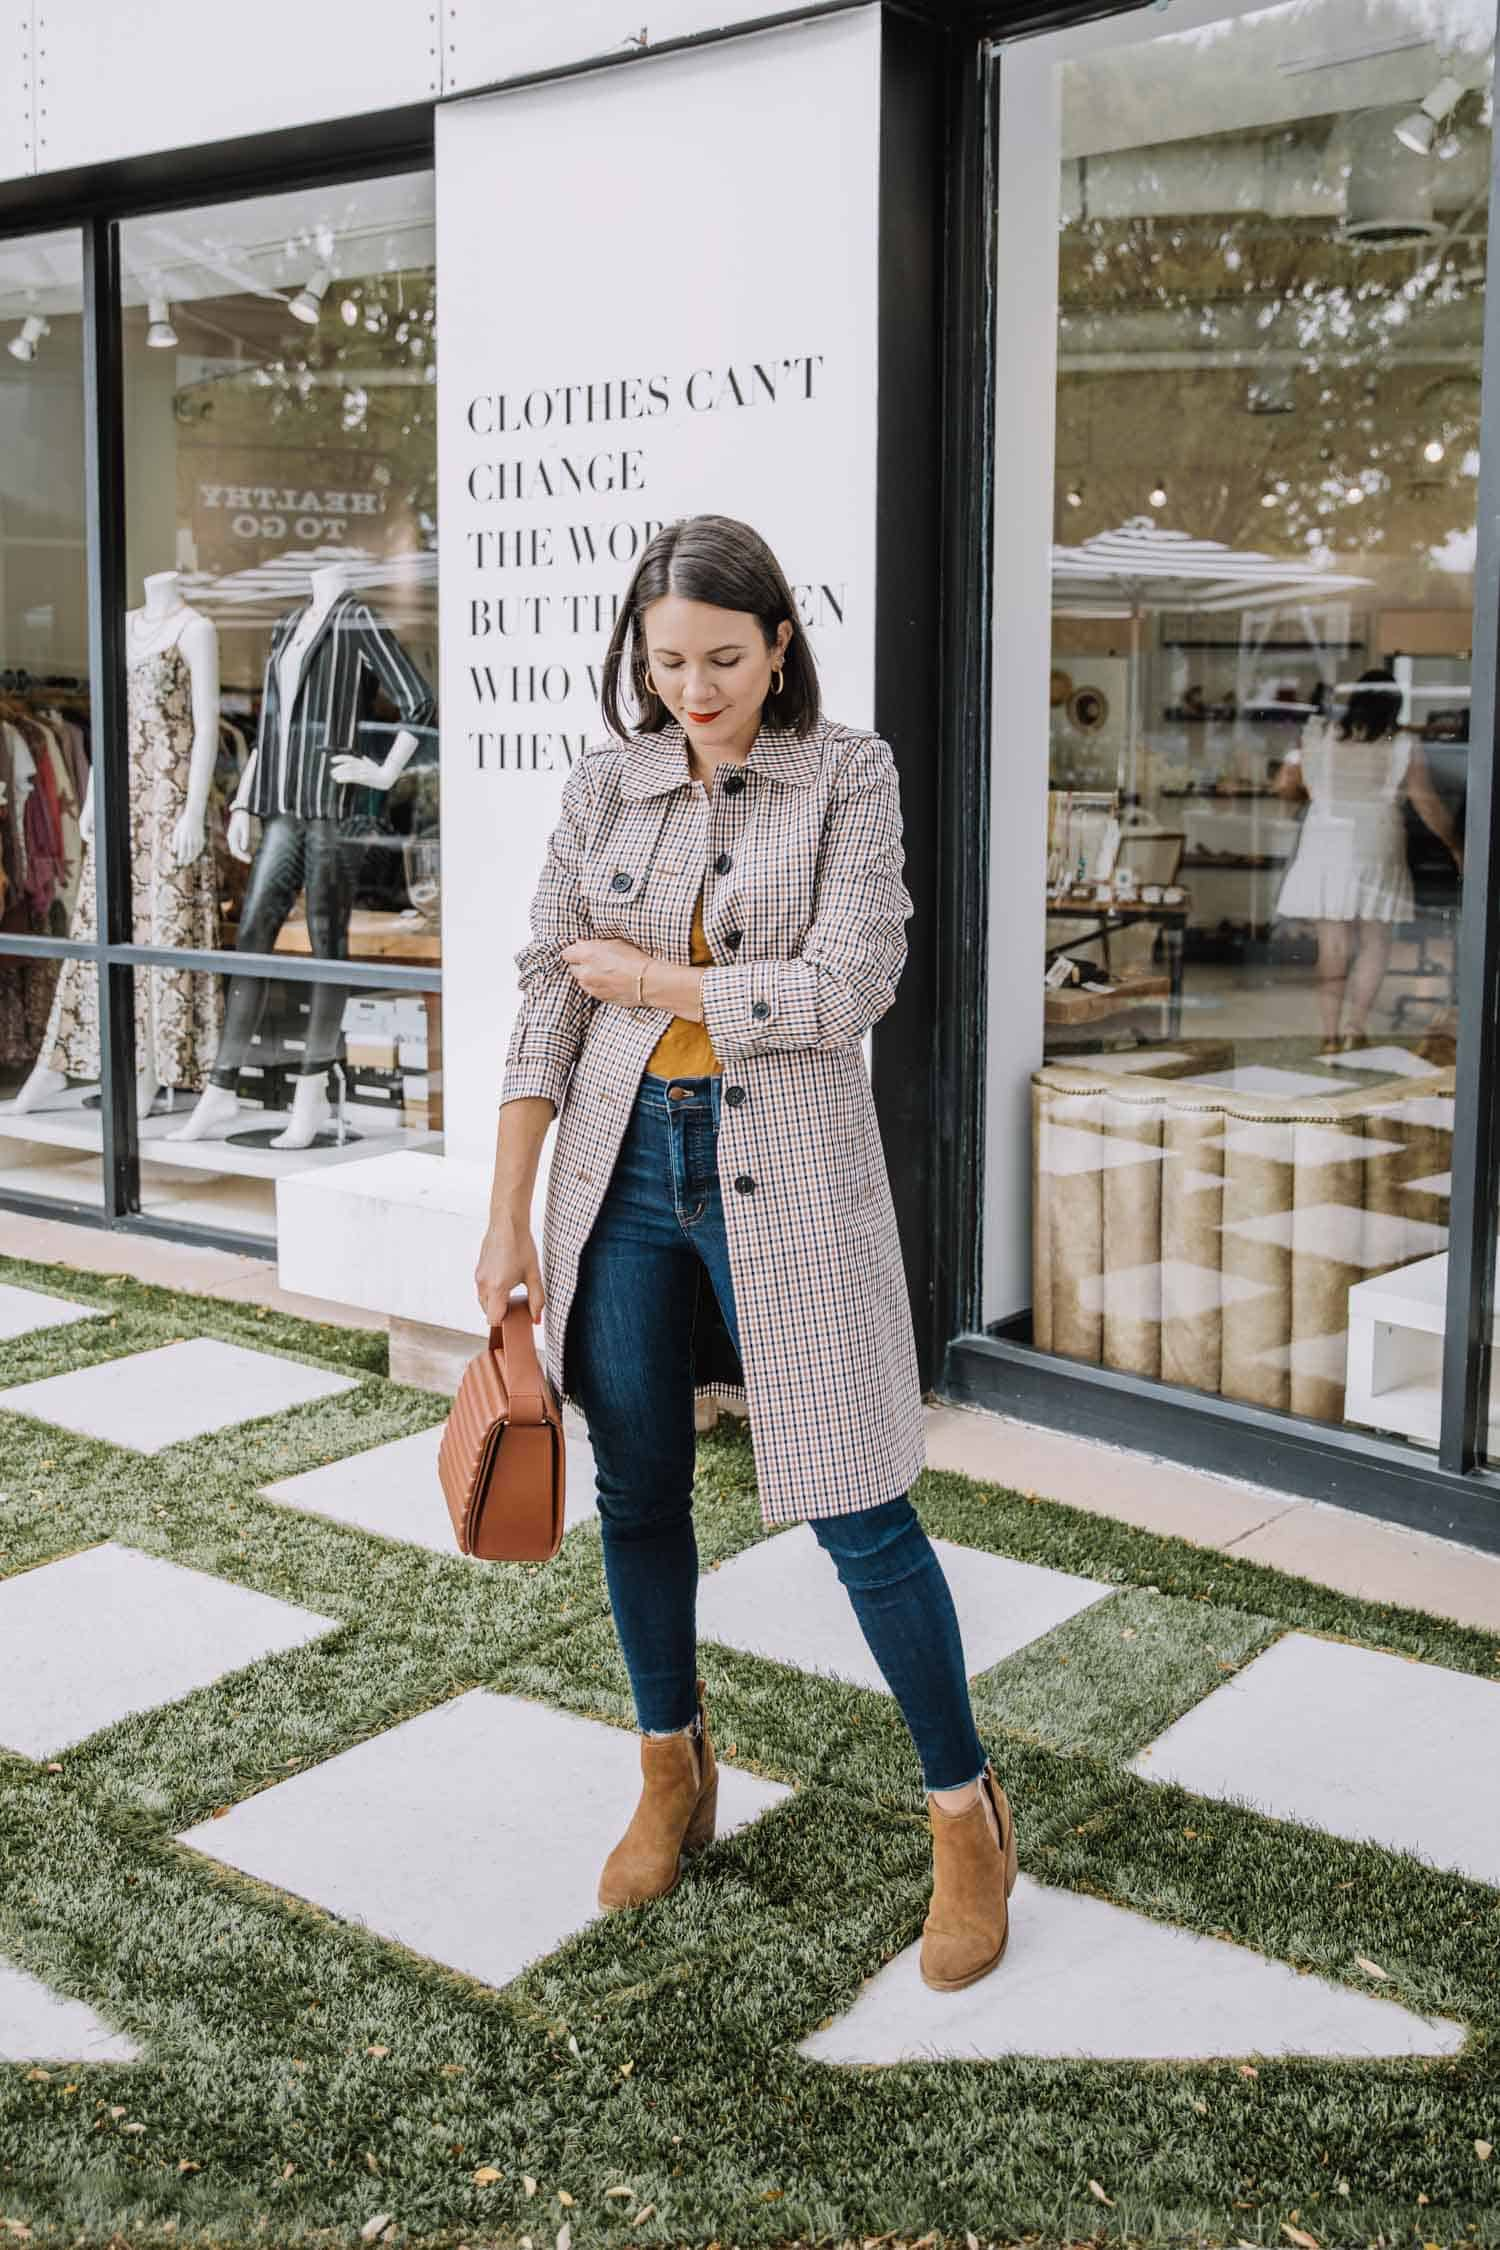 Plaid Trench Coat • Madewell Jeans • Steve Madden Booties • Vince Camuto Bag